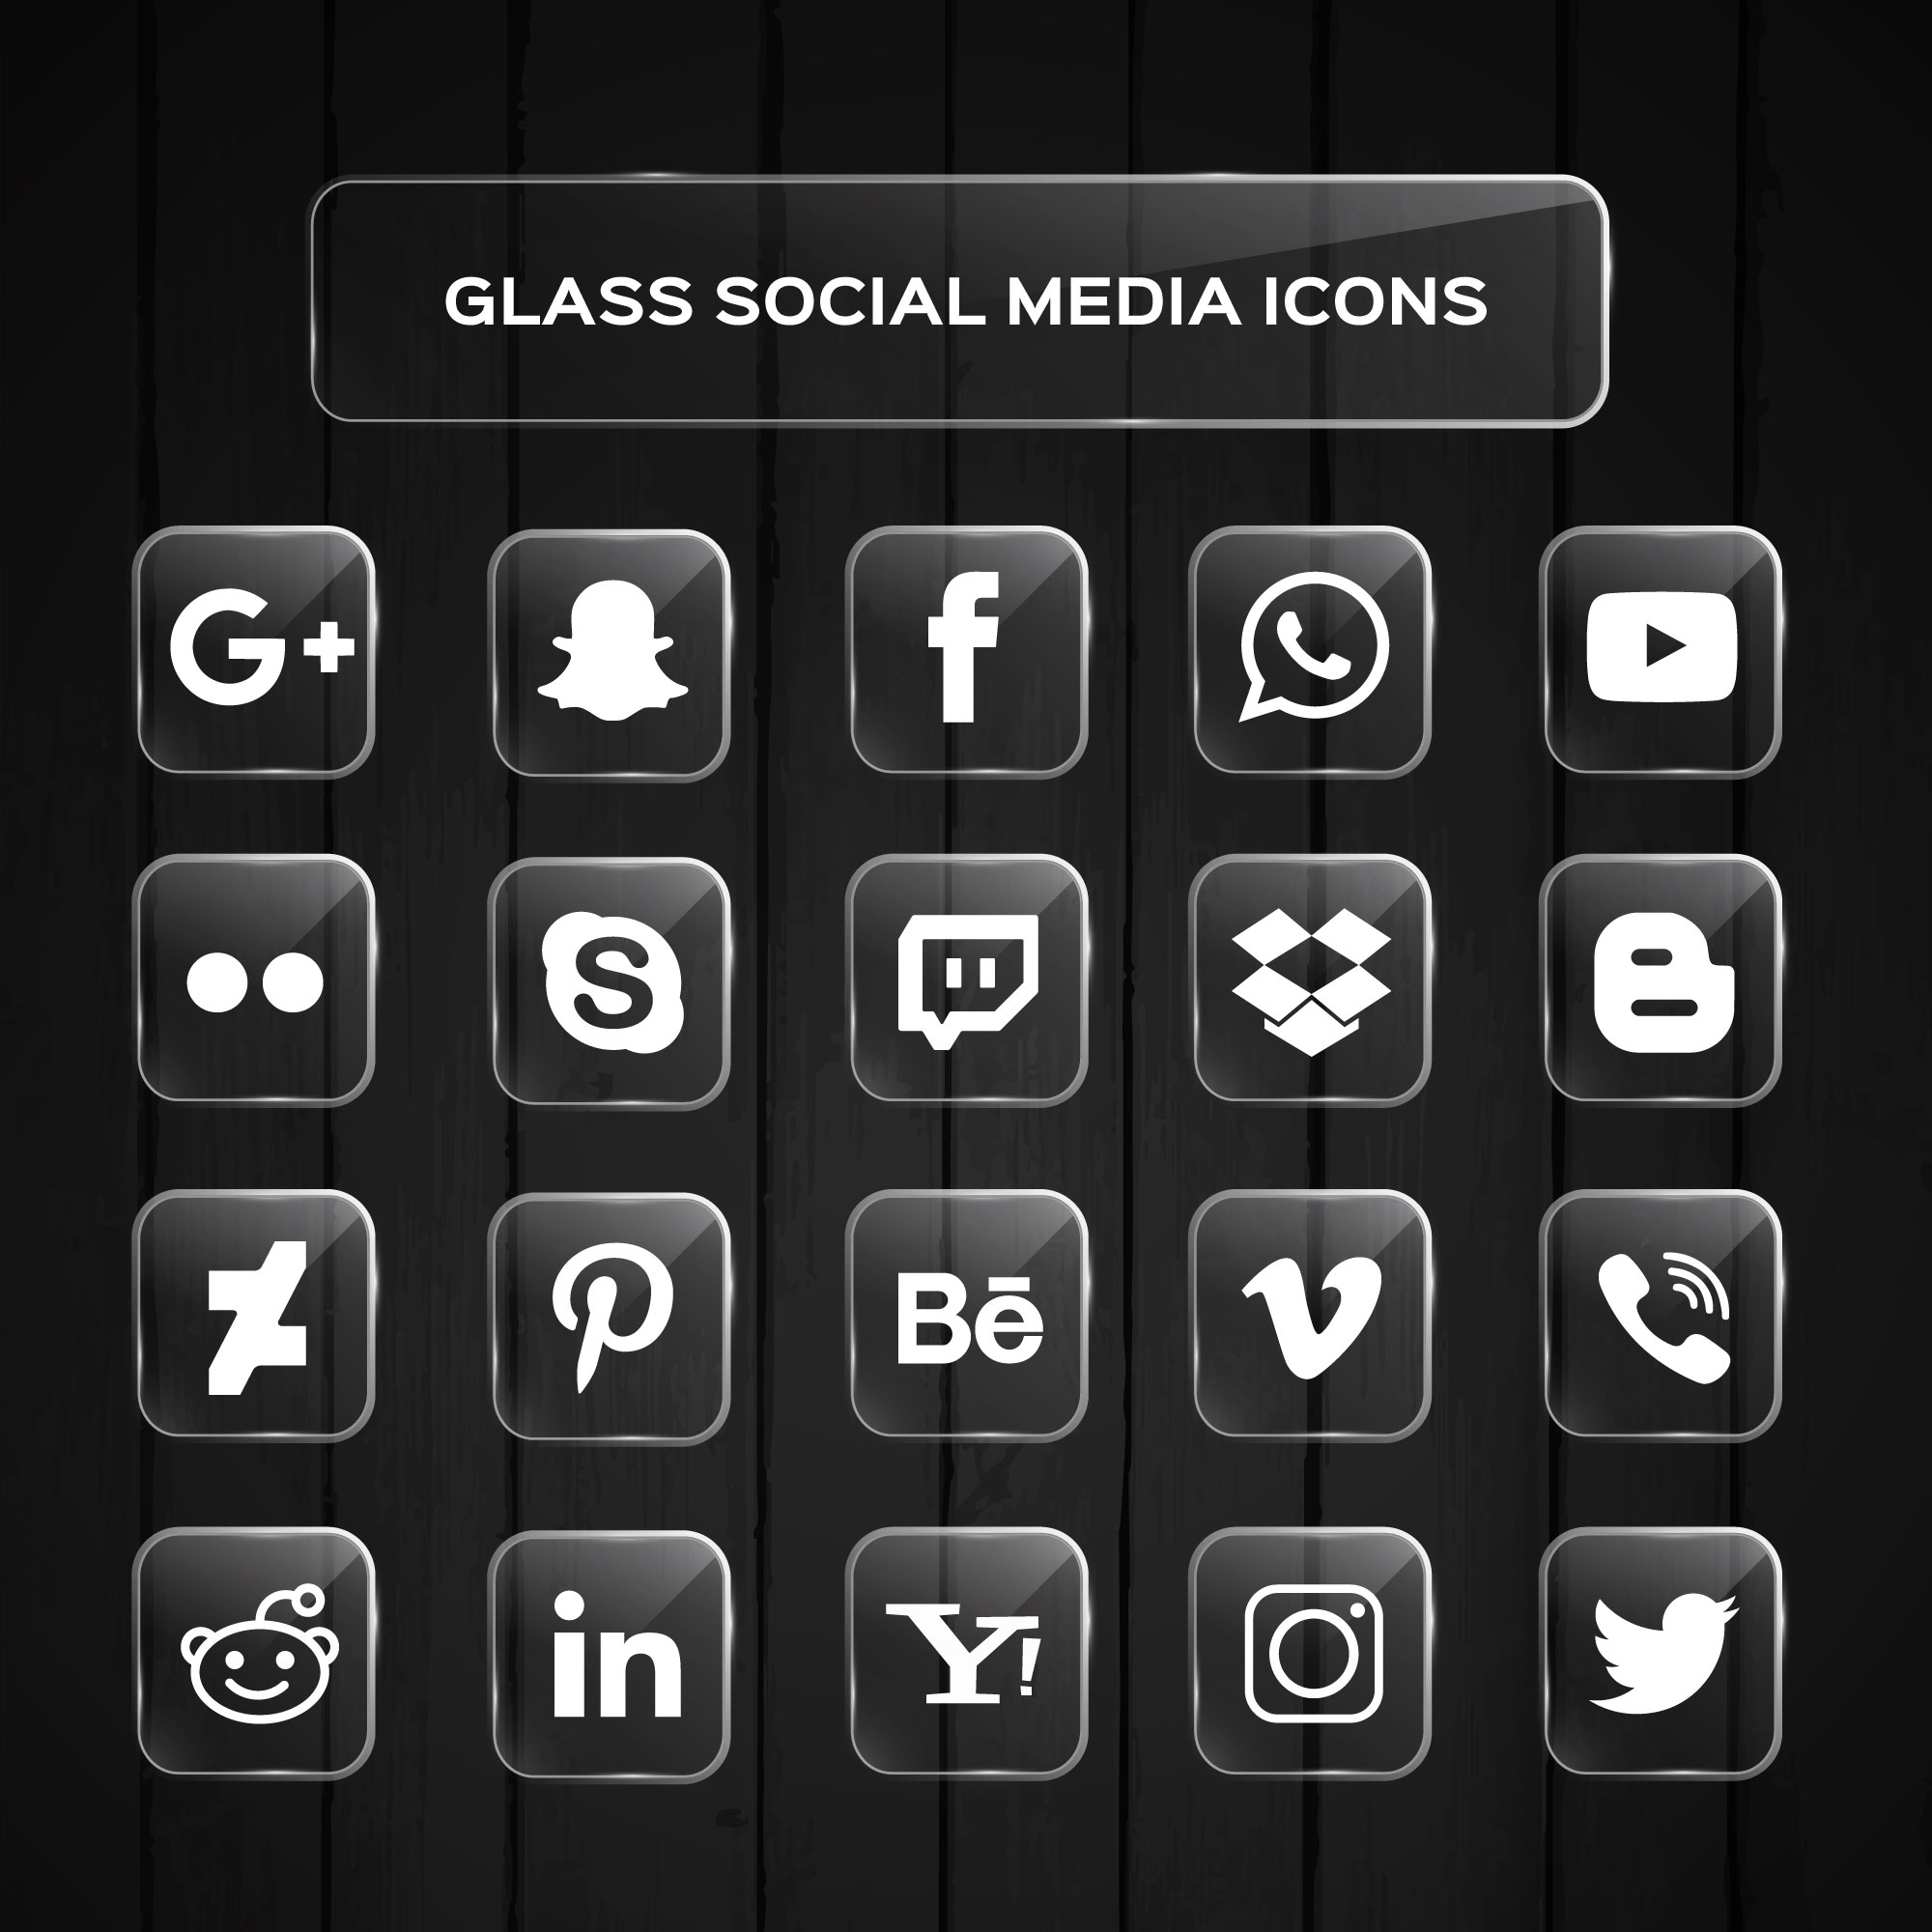 Glass Social Media Icons